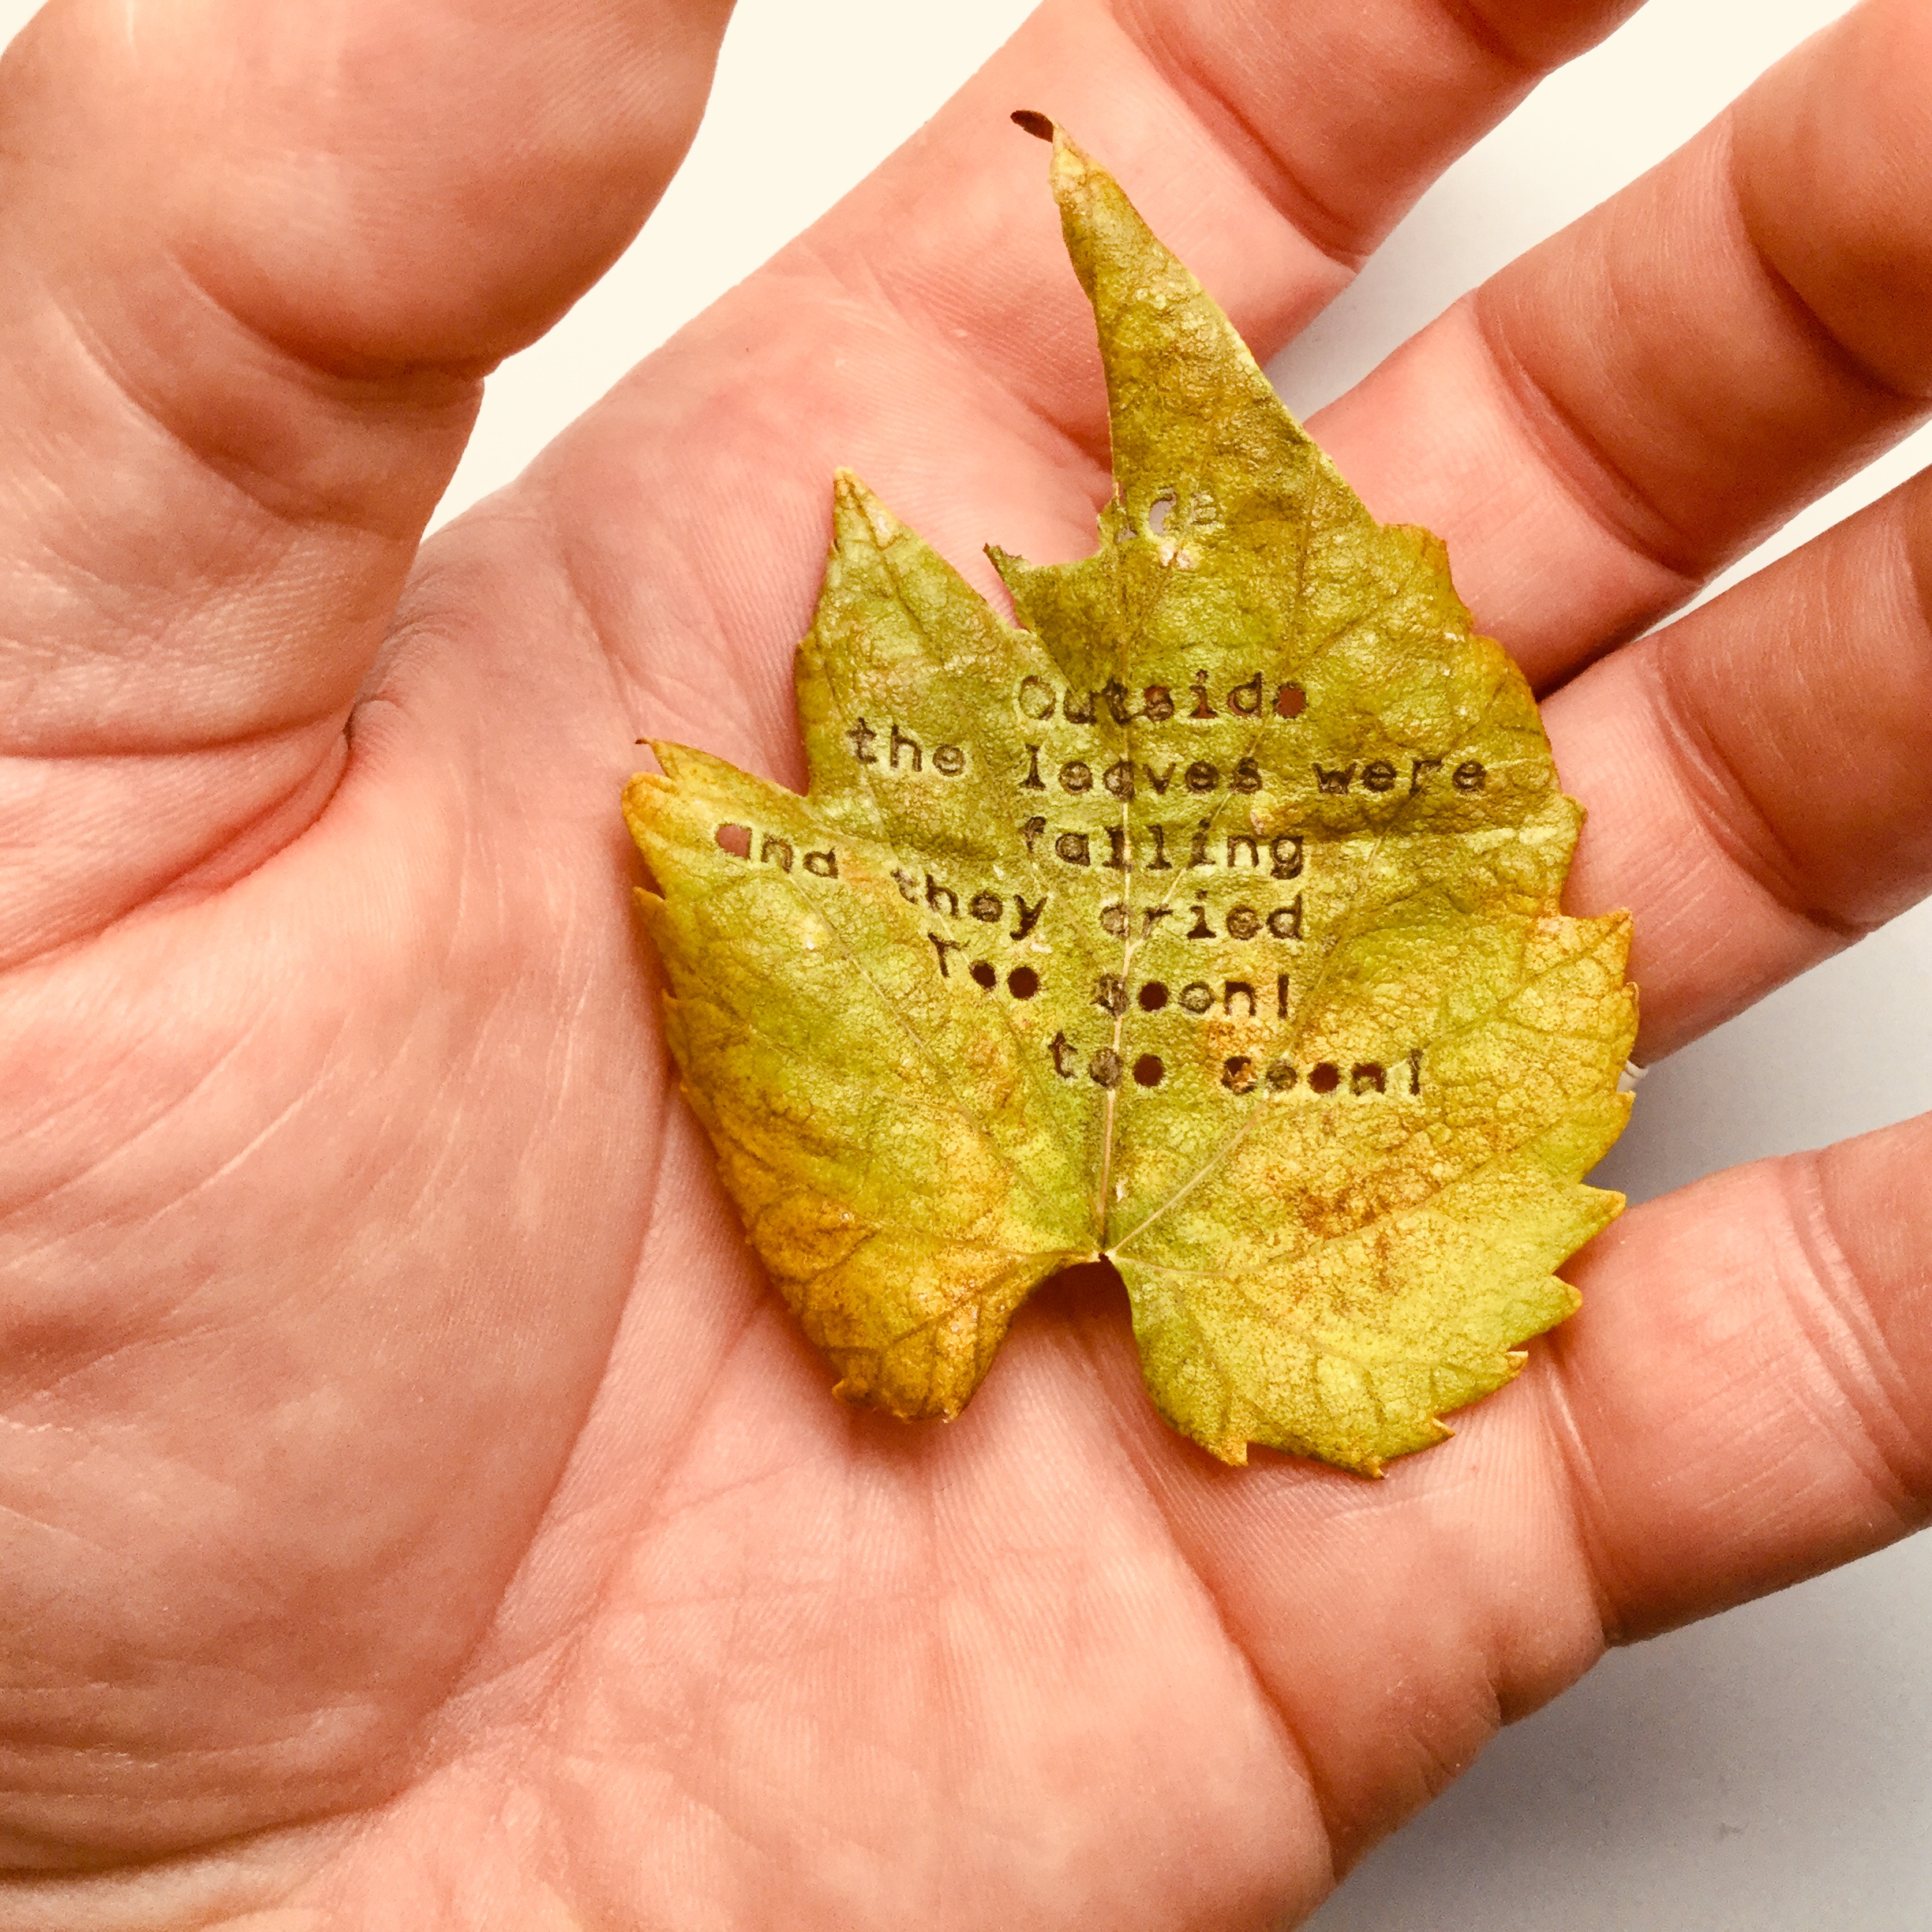 Leaf Typing, Royal QDL, Excerpt from Ferlinghetti's Poem The Pennycandystore Beyond the El